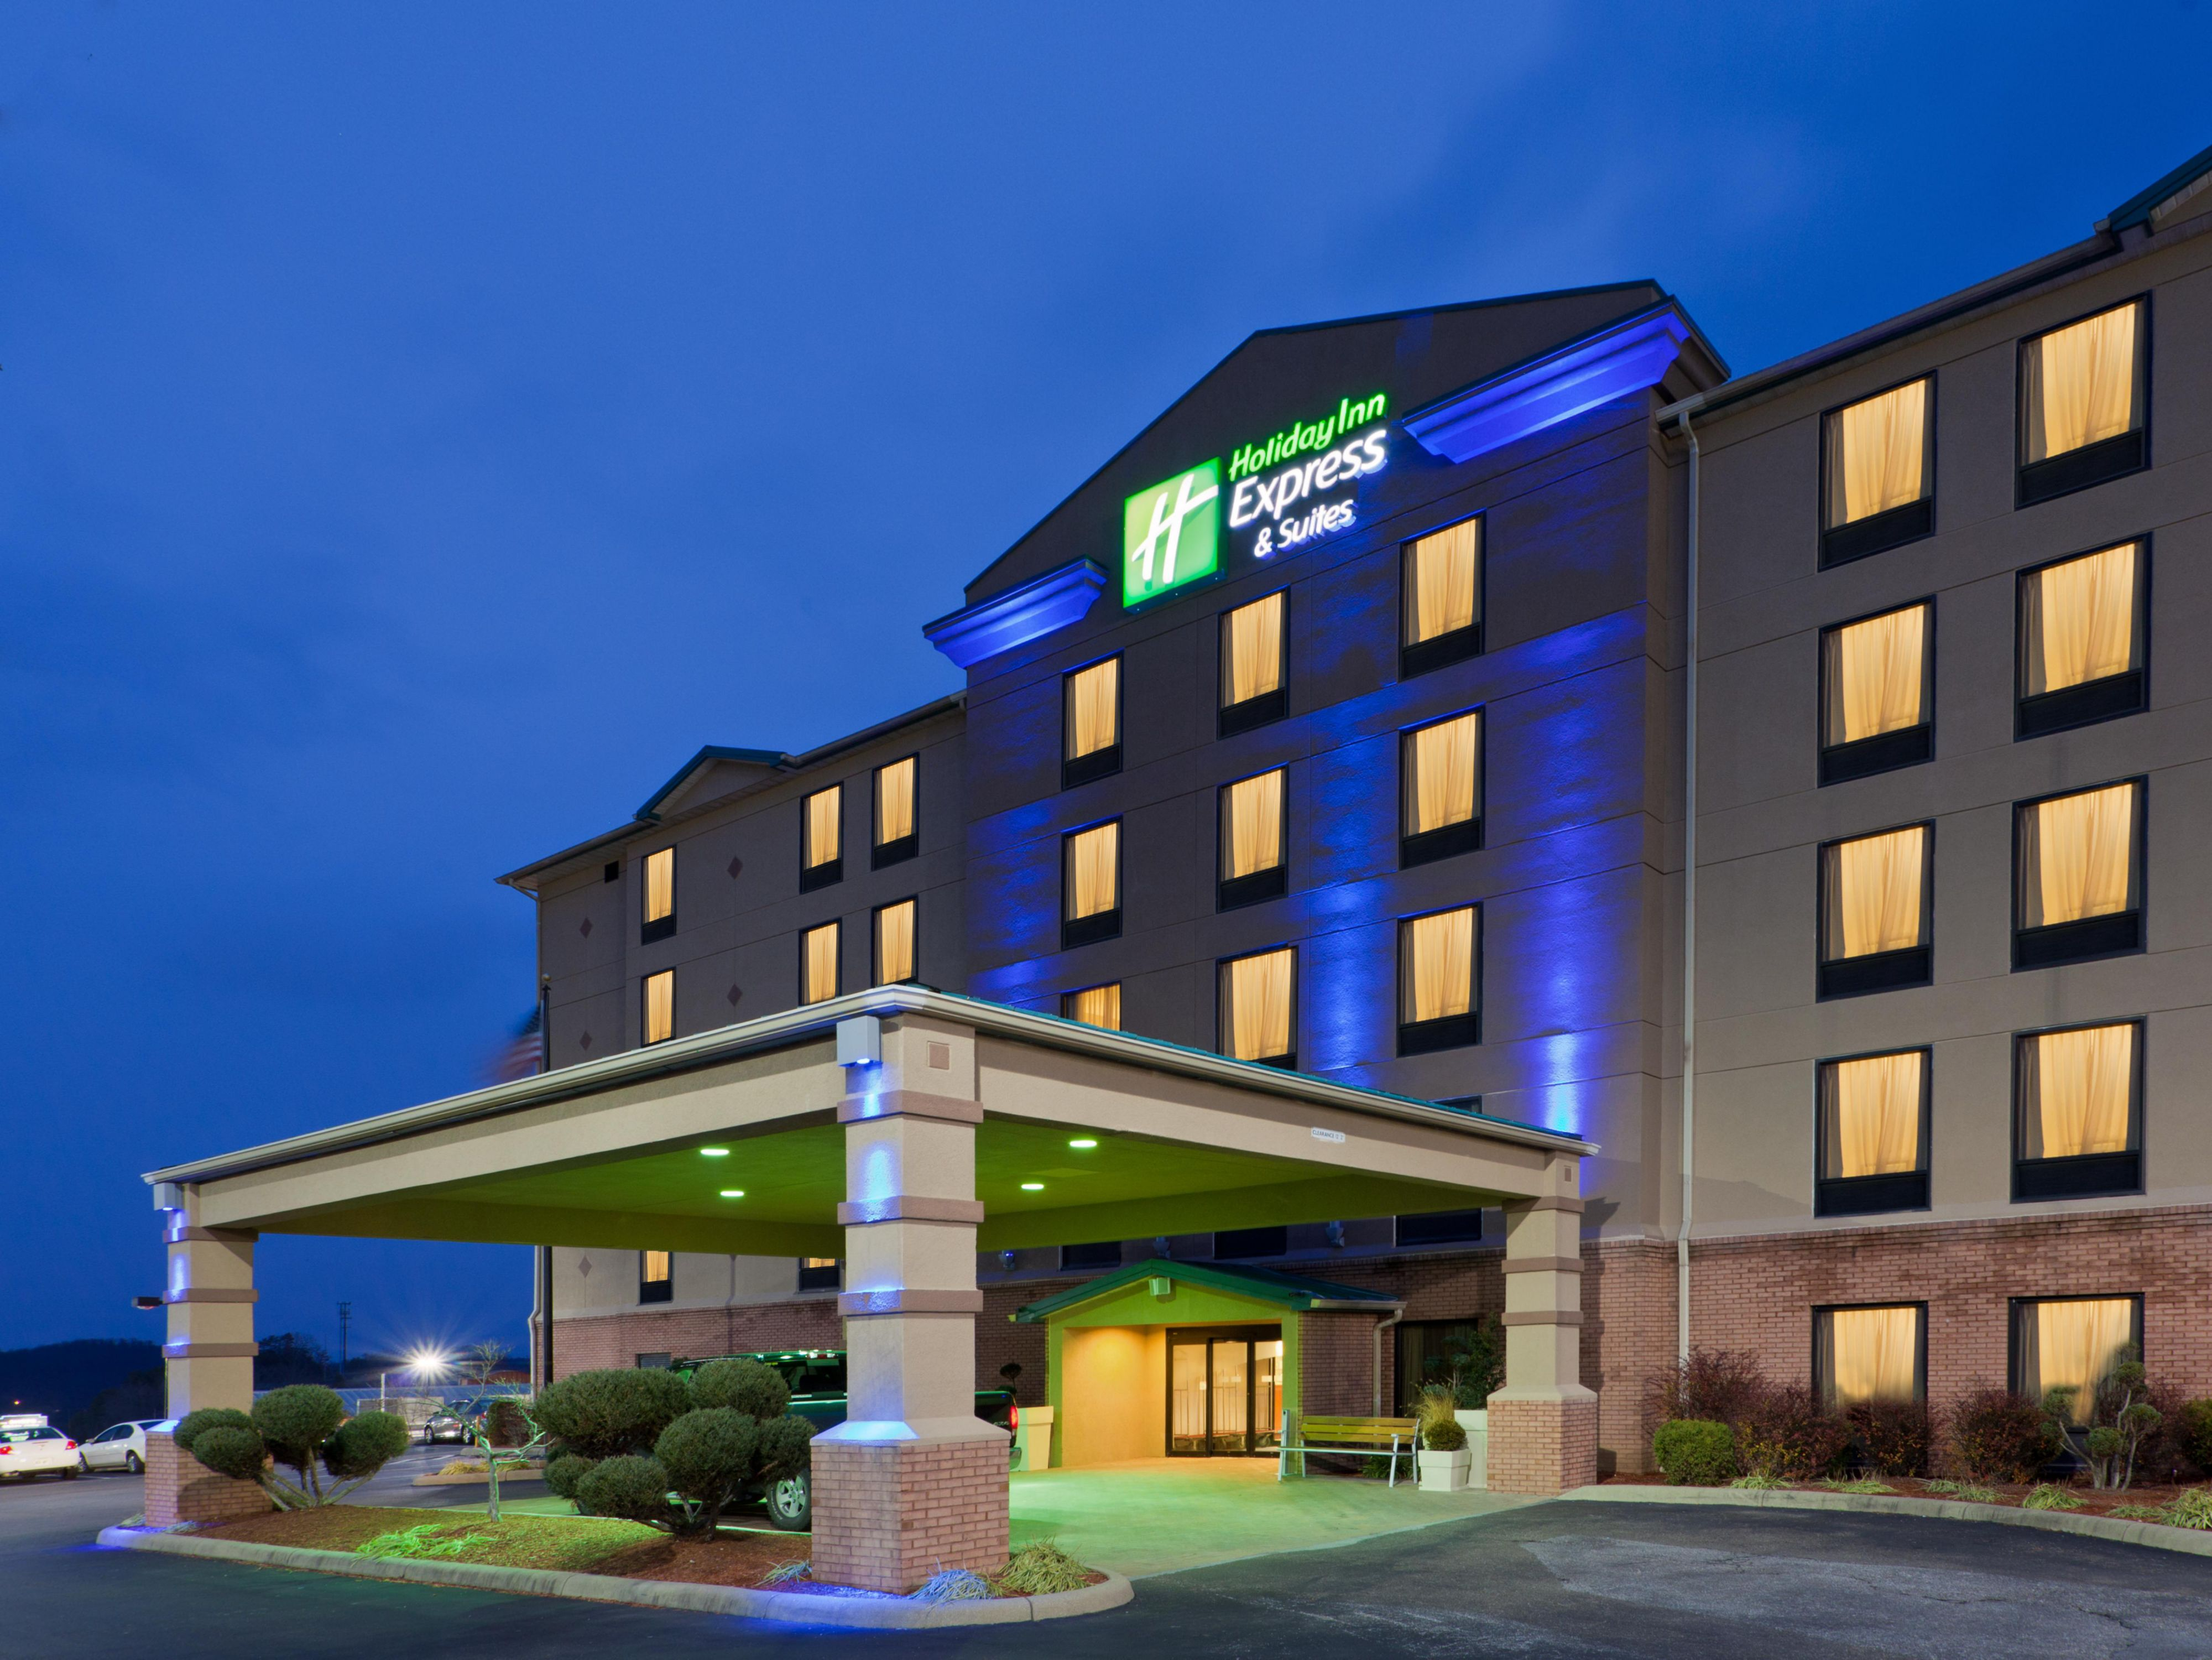 Holiday Inn Express & Suites has a well lit area to welcome you